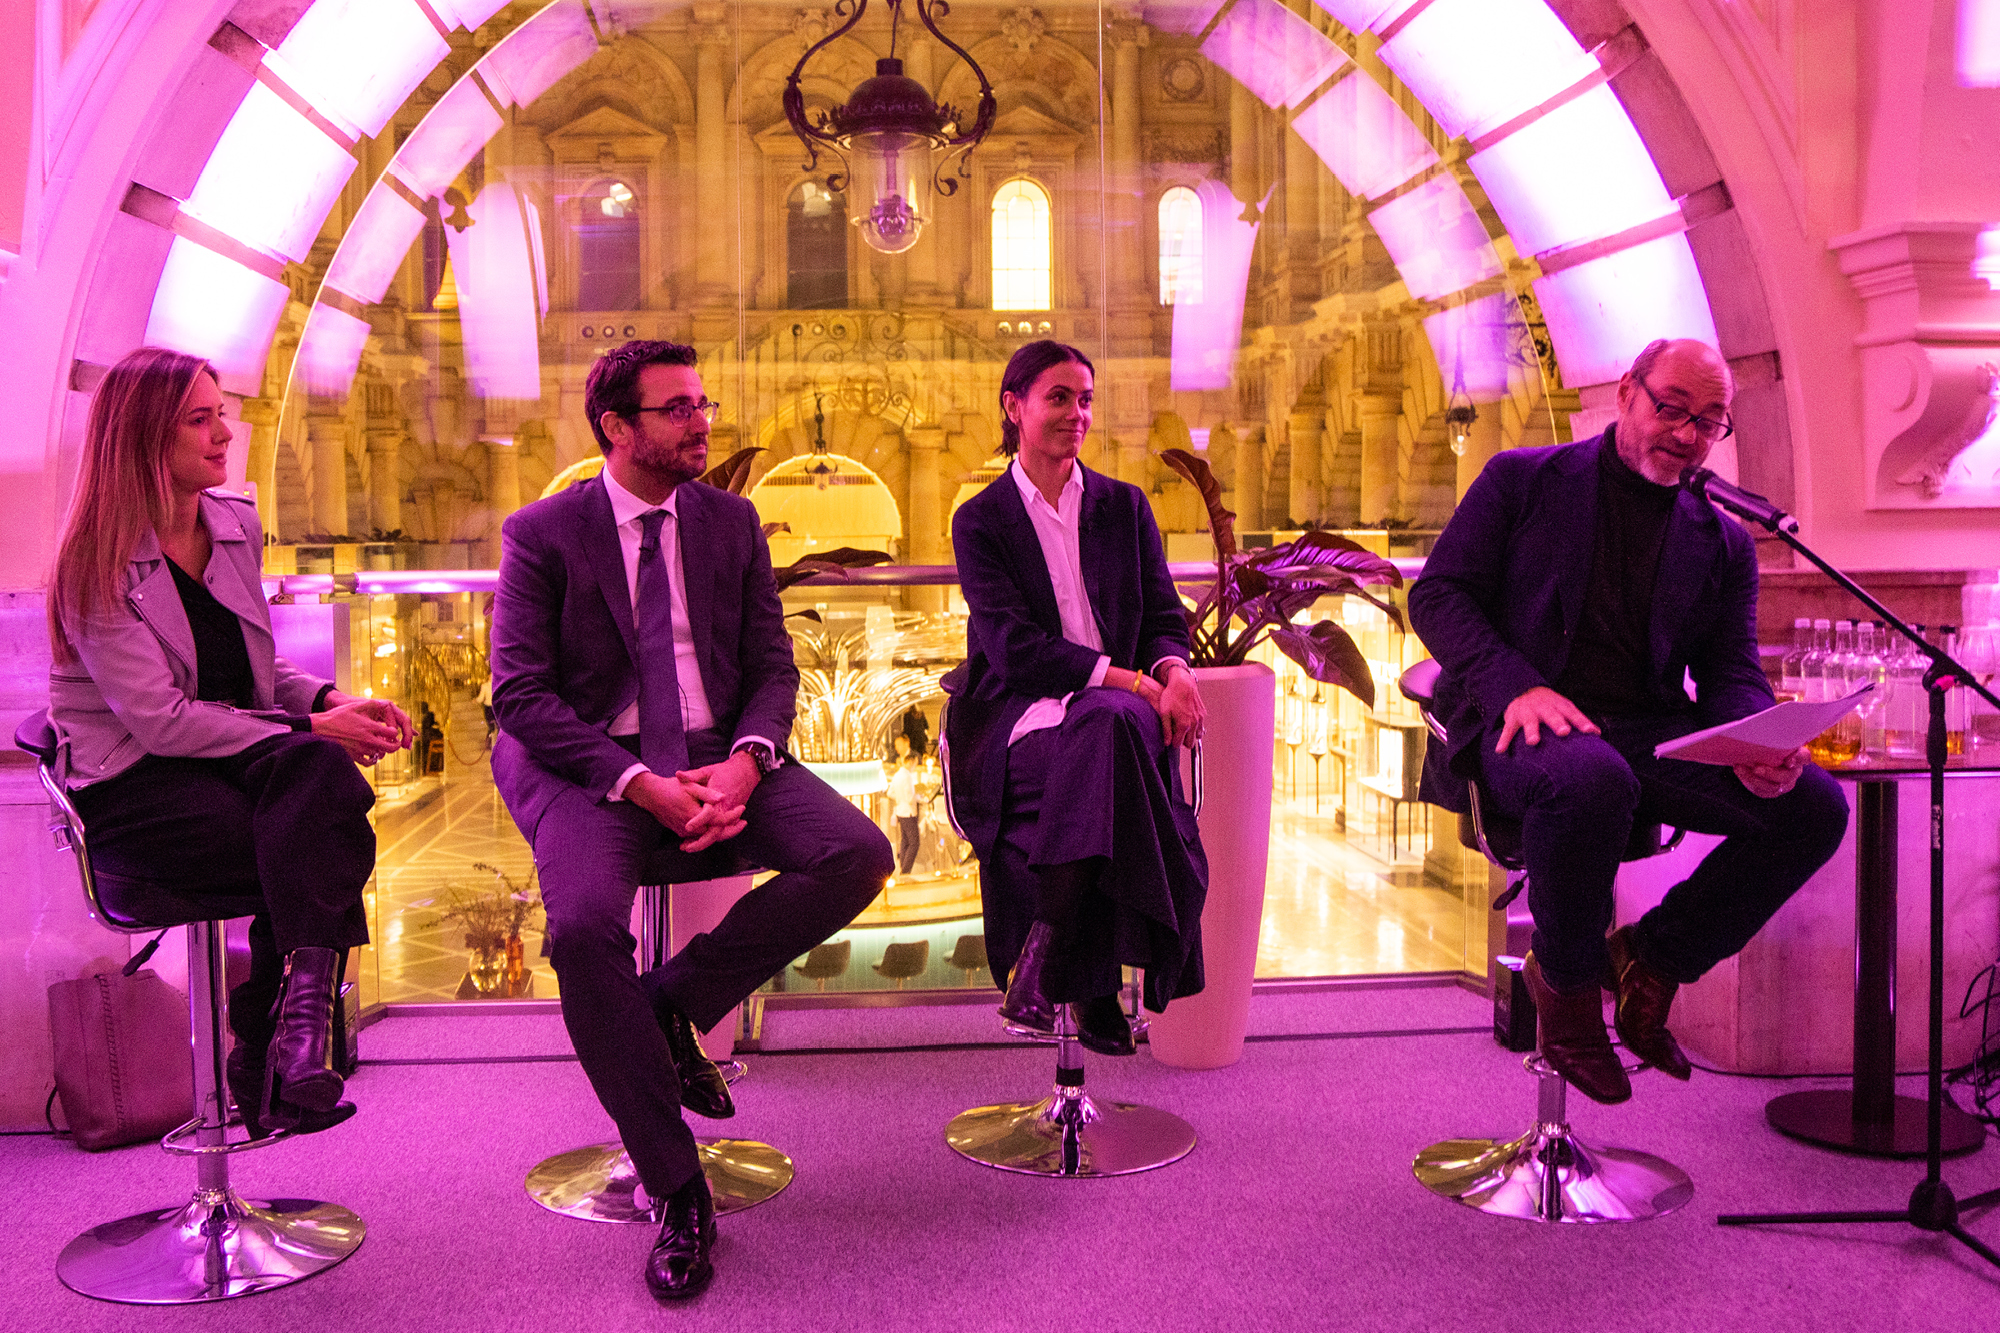 SHOW CEO Peter Howarth with Amanda Motta, head of brand and creative for heritage jewellery house Boodles; Andrea Nunziata managing director and Omega brand director at The Swatch Group (UK); and Zia Zareem-Slade, customer experience director at Fortnum & Mason